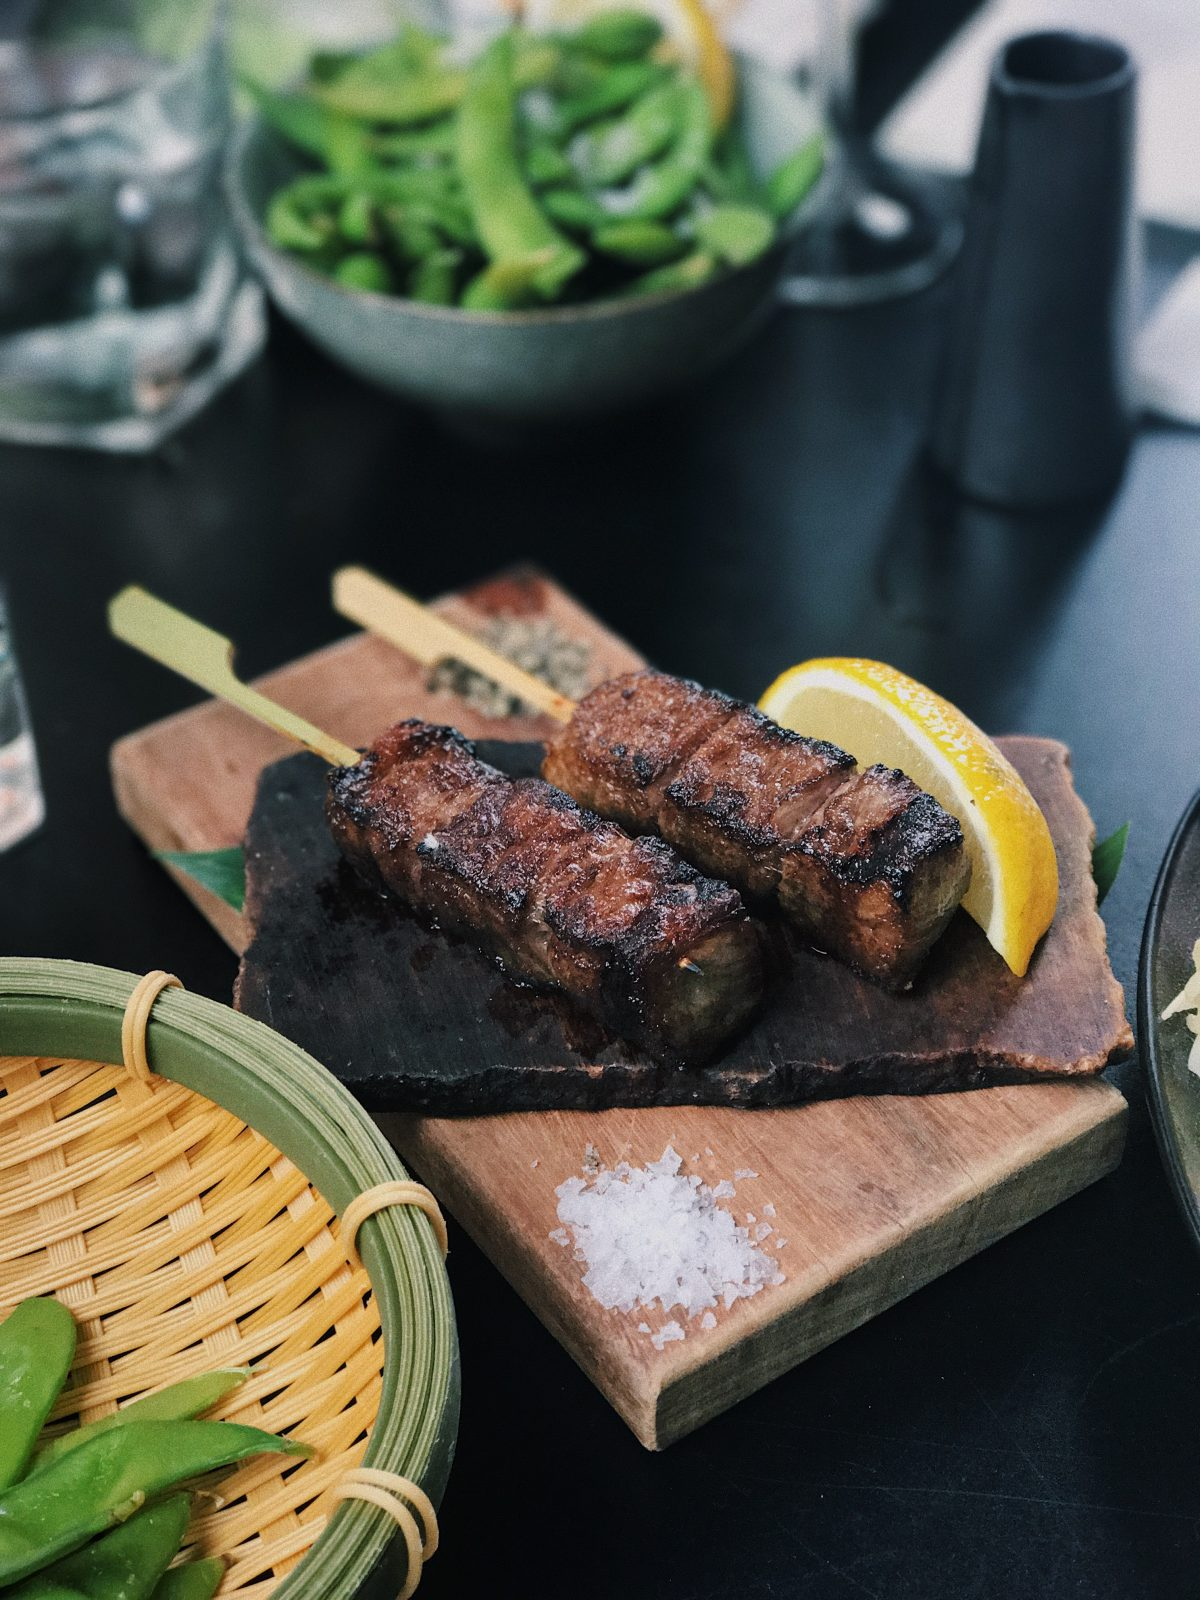 Photo of two sticks of beef chunks with three chunks per stick and a lemon slice on the side for decoration on a wooden block on top of a thicker wooden block on a black table with other bowls filled with greens on the sides with a cup of water blurred in the upper left background and a blurred dark grey container to the upper right